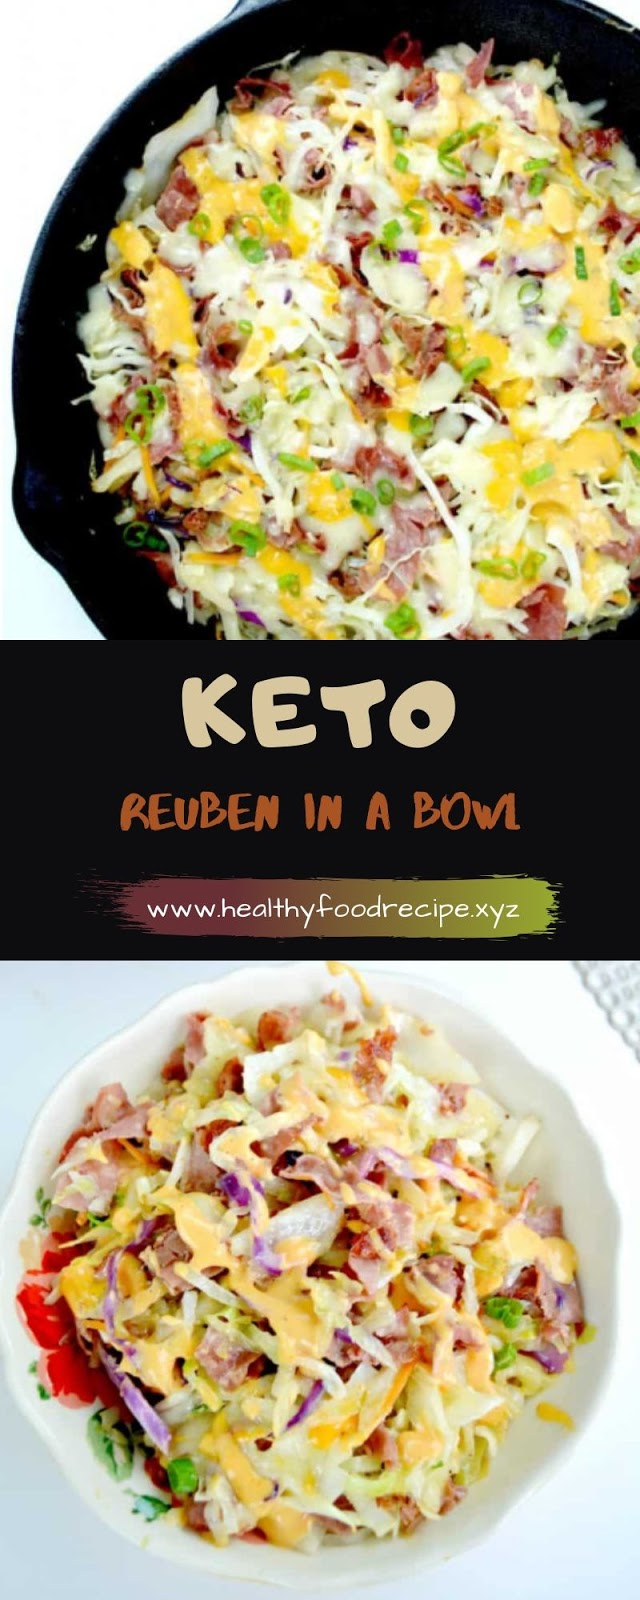 KETO REUBEN IN A BOWL